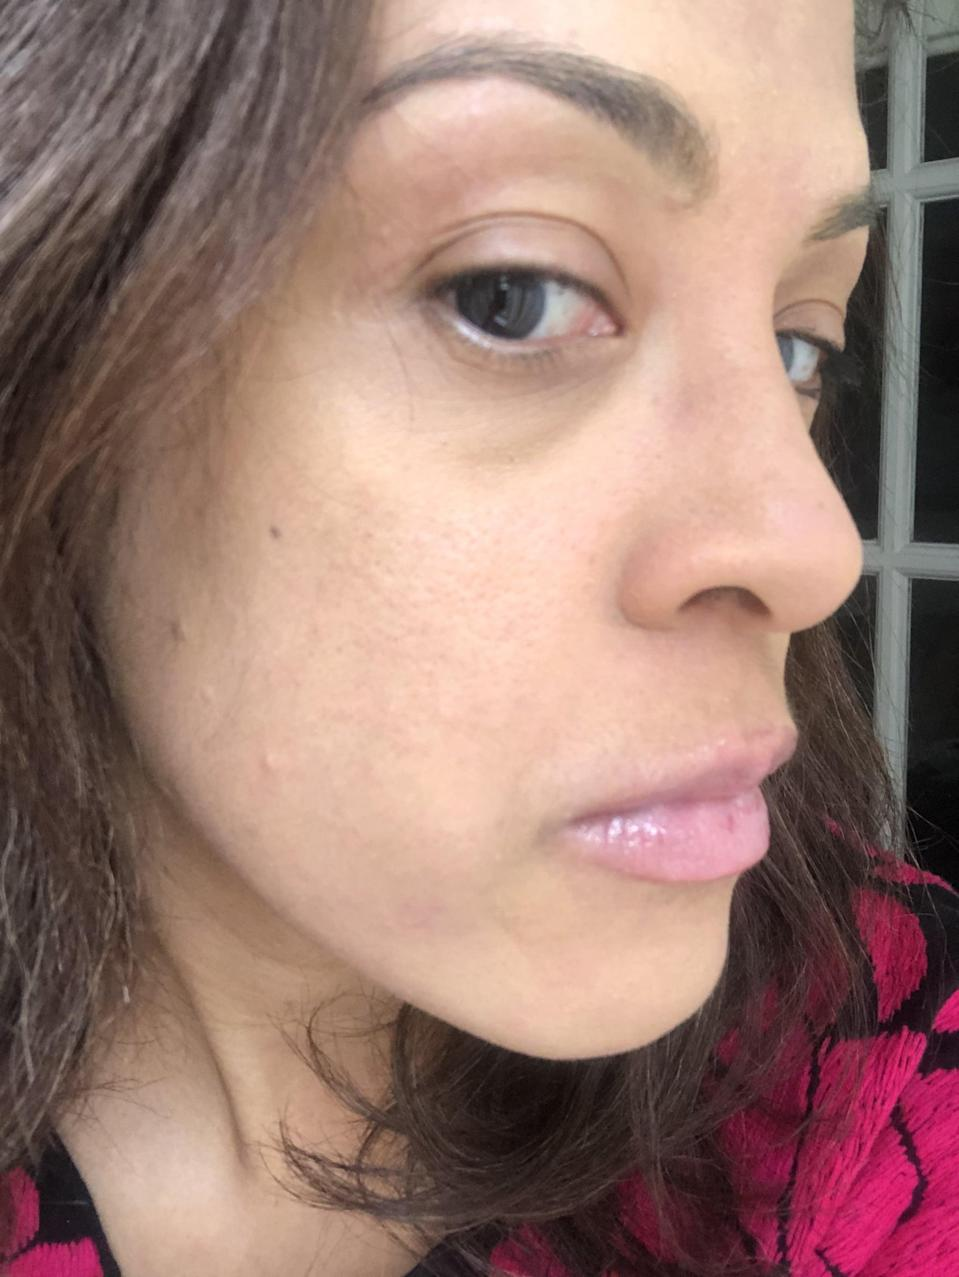 """<p>Here's what my face looks like with <span>Rare Beauty's concealer</span> dabbed onto dark spots with the doe-foot applicator tip and onto larger zones (like the side of my nose) with the long, flat side.<br><br> After I targeted problem spots, I used my fingers to <a href=""""https://www.popsugar.com/beauty/Should-Foundation-Match-Face-Neck-8091632"""" class=""""link rapid-noclick-resp"""" rel=""""nofollow noopener"""" target=""""_blank"""" data-ylk=""""slk:spread this product all over my face"""">spread this product all over my face</a>, too. I'm definitely impressed by how well this formula covered my skin and still ended up in a radiant finish, not at all cakey or dry.</p>"""